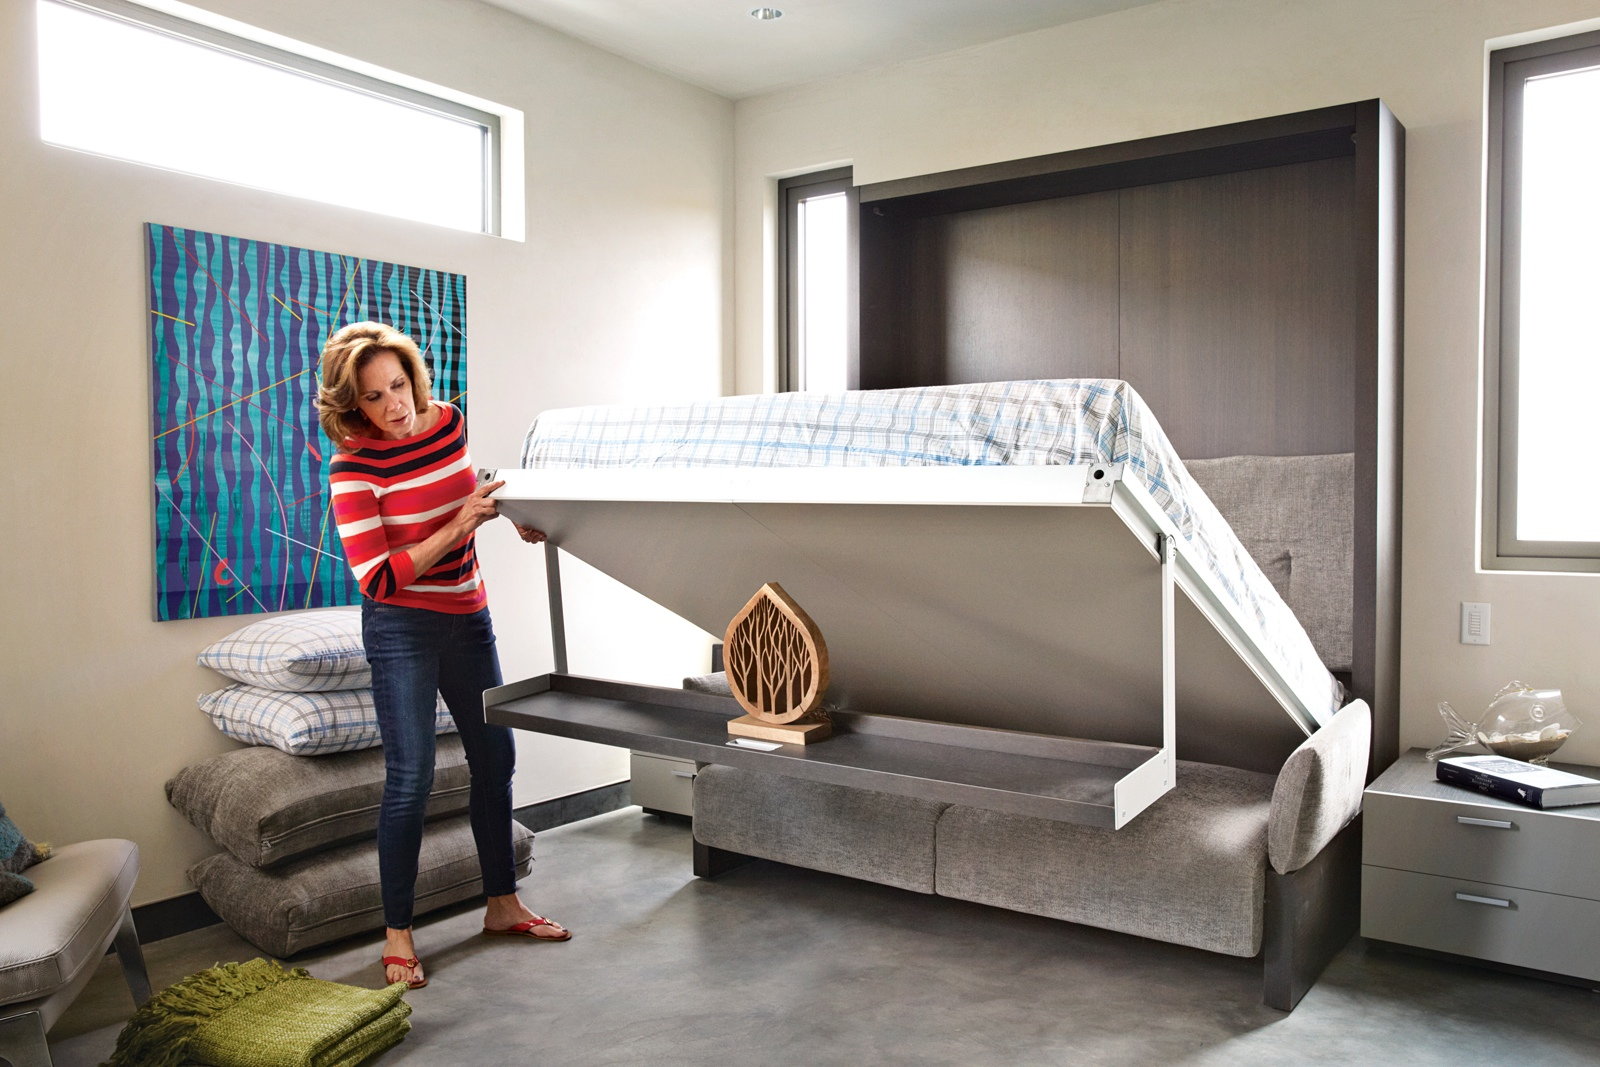 Fold Out Beds For Small Spaces Bryan Cranston 39s House